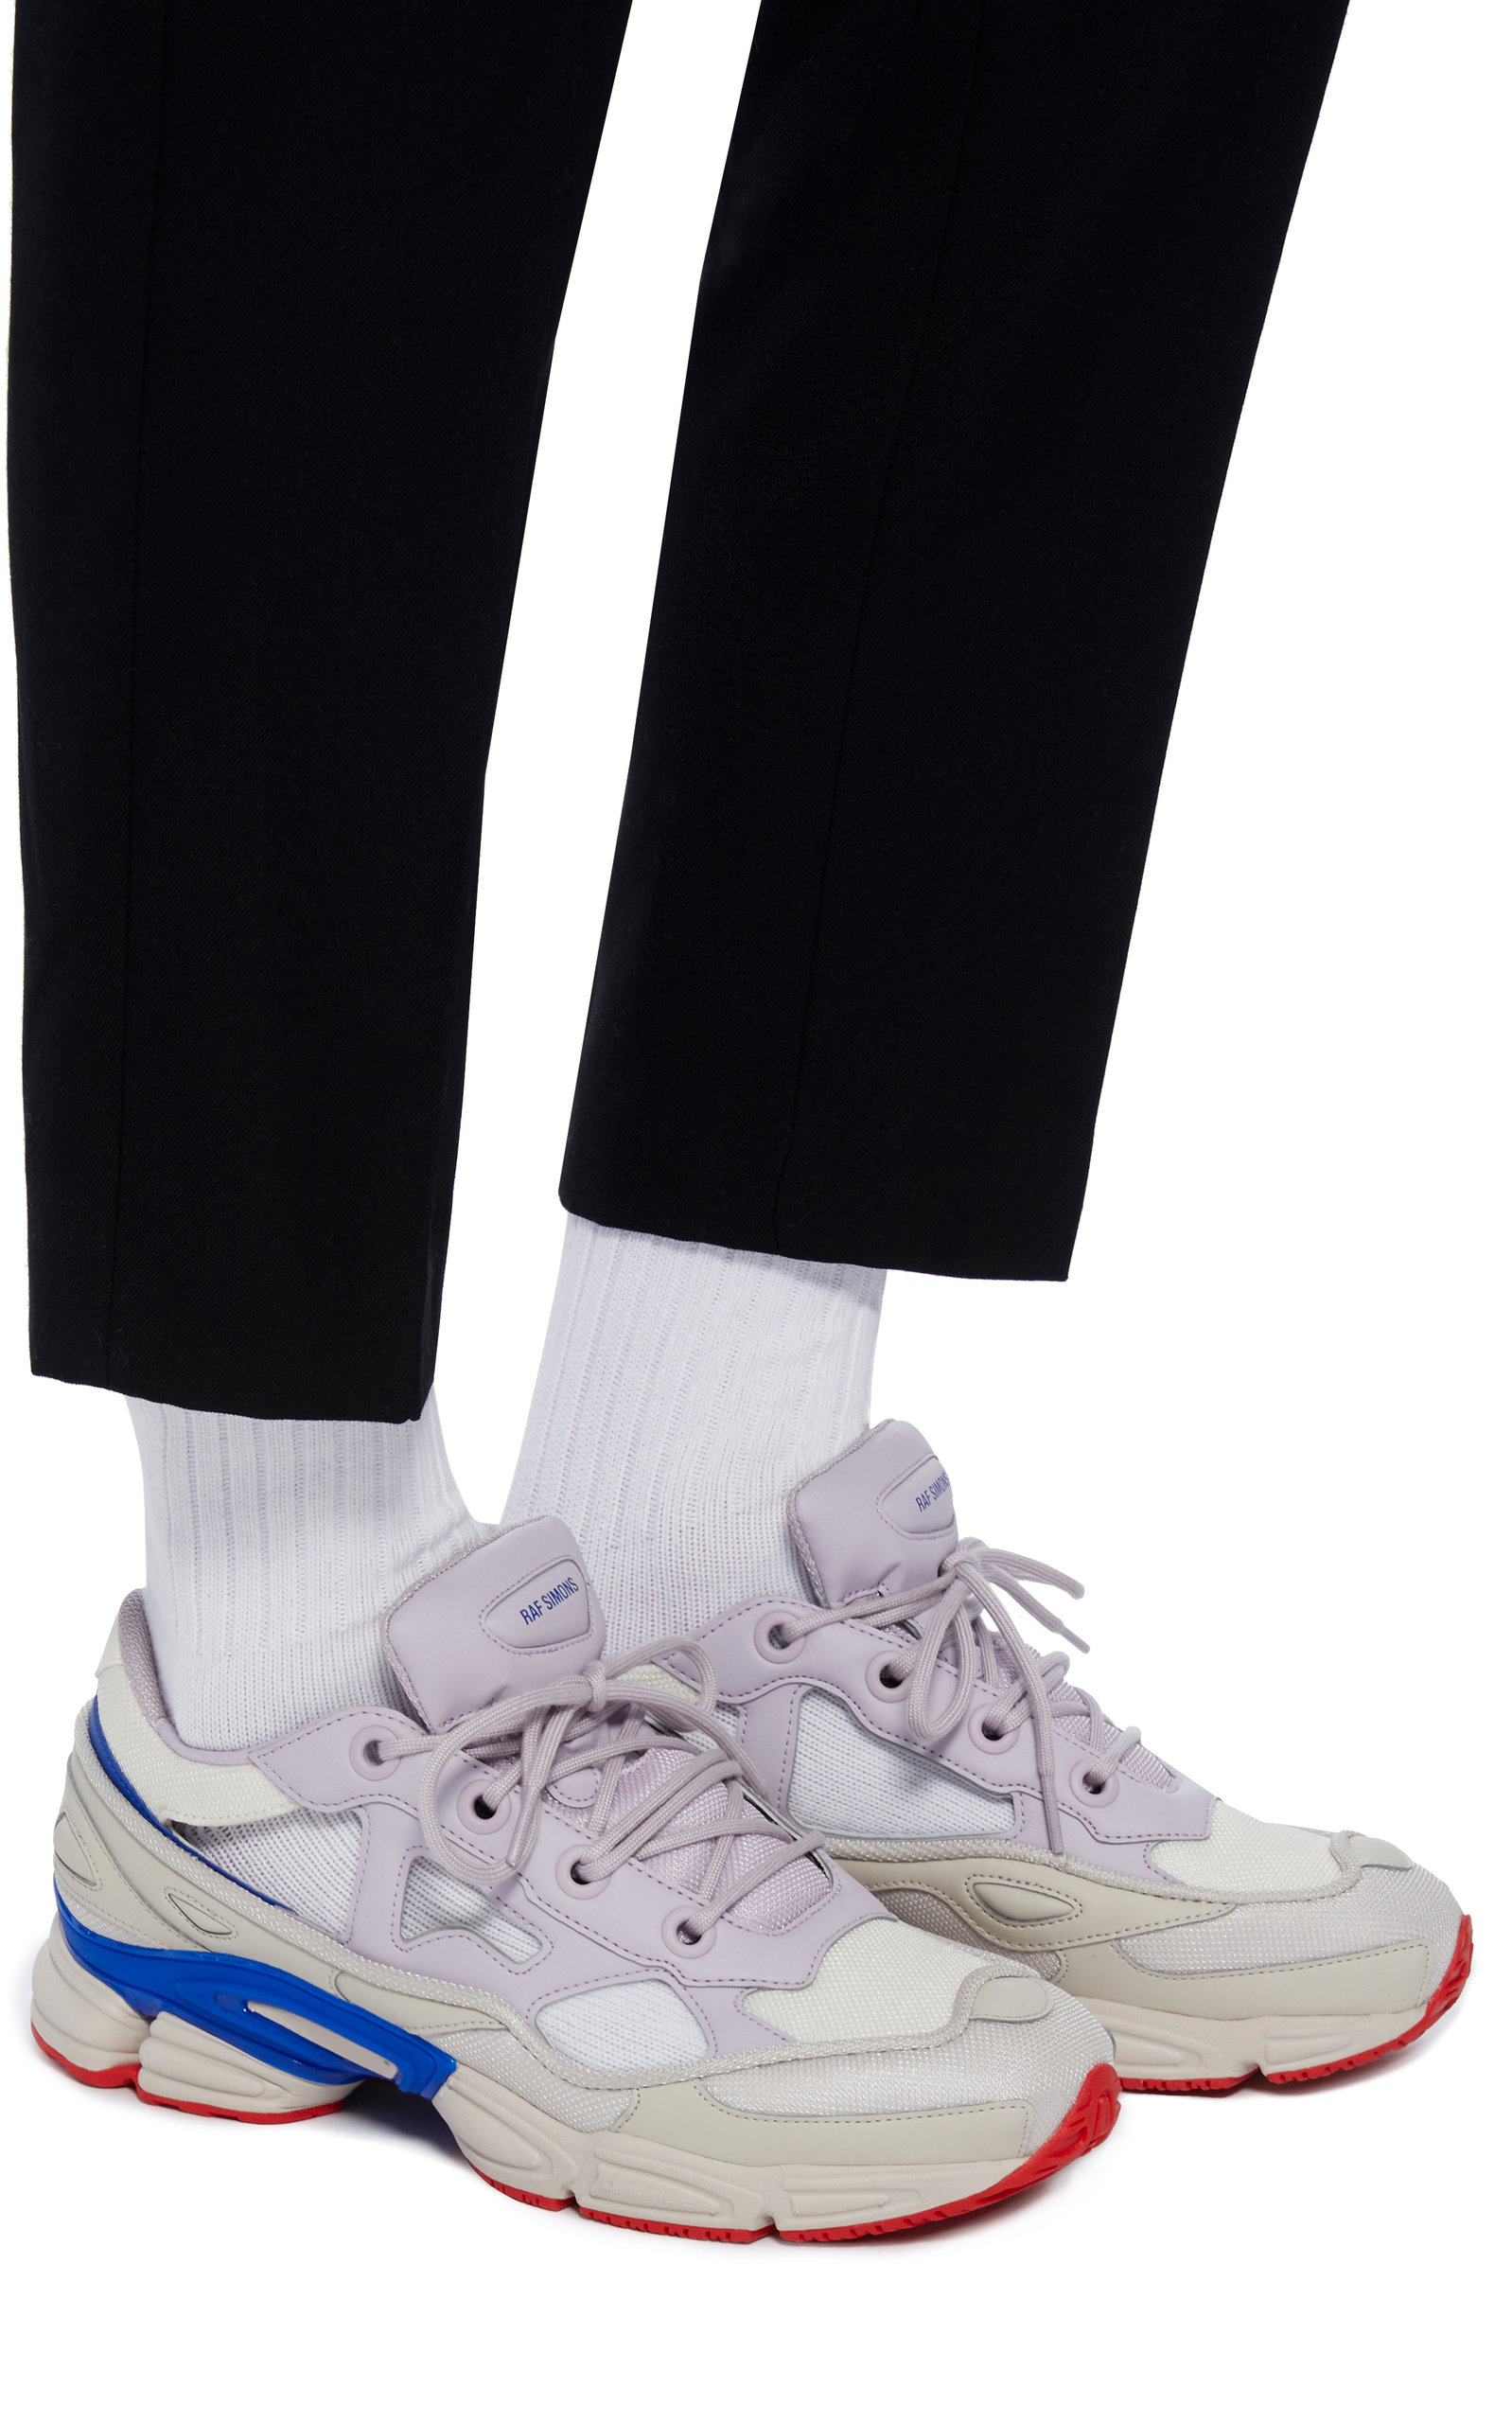 new arrival 31a37 c573d RS Replicant Ozweego Sneakers